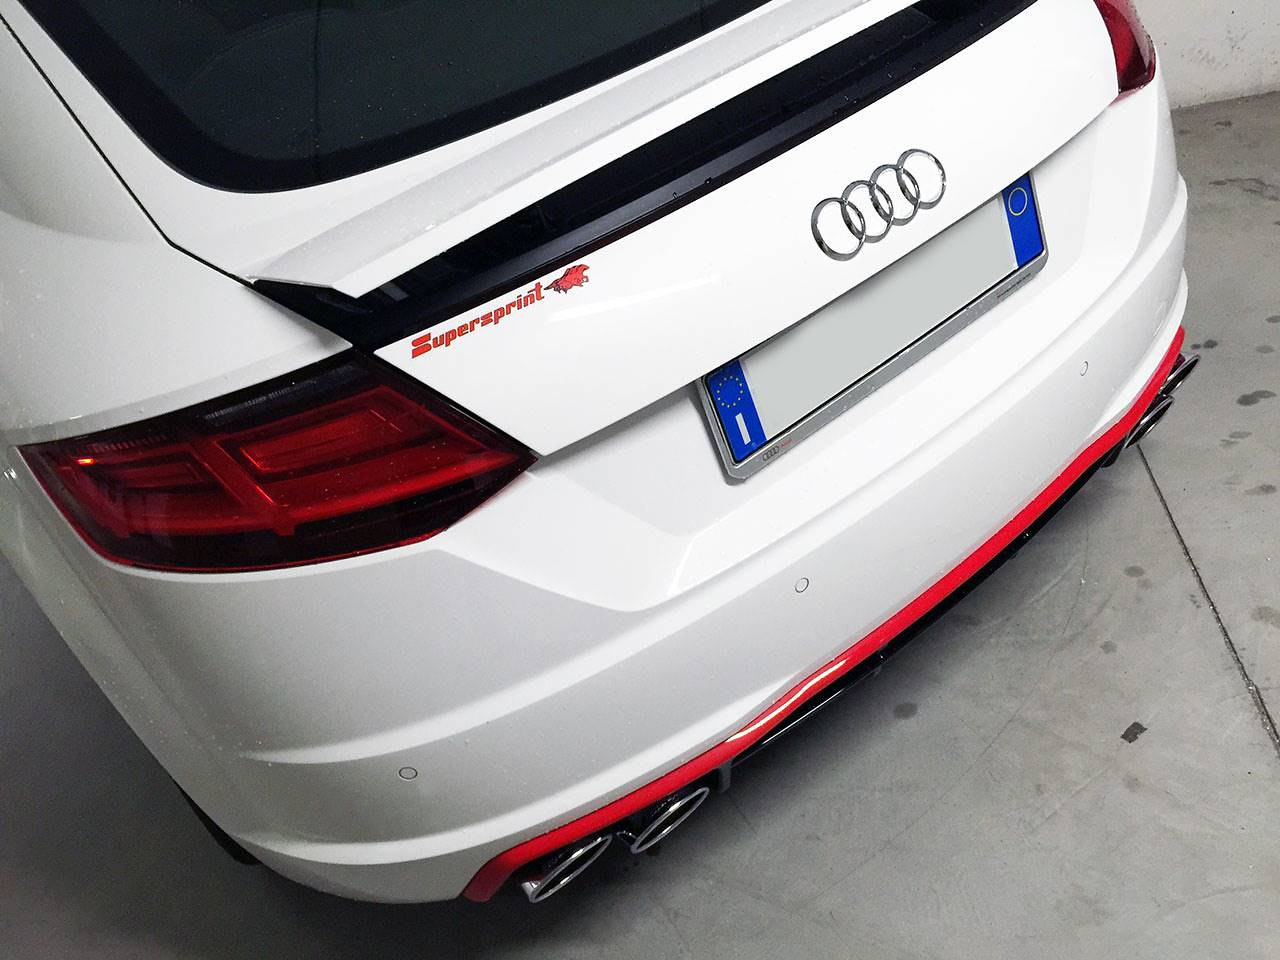 Supersprint sport exhaust on Audi TT Mk3 2.0 TDI